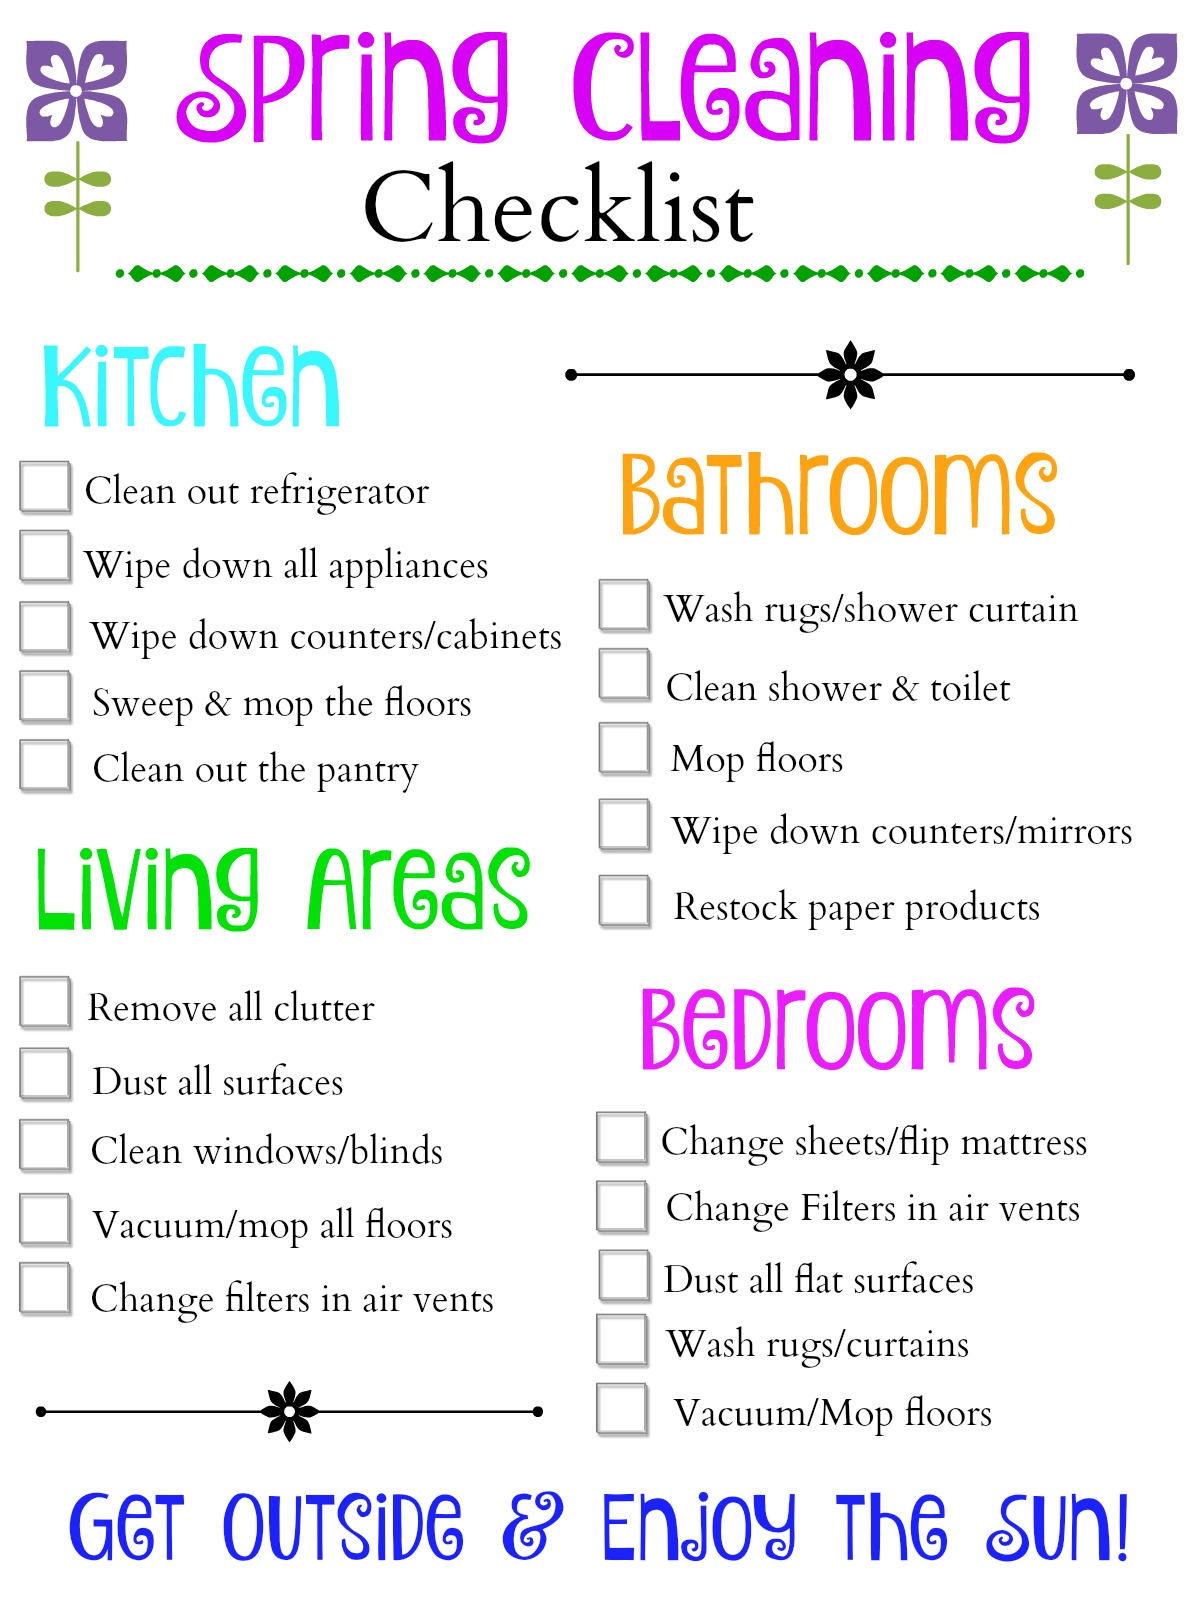 Spring Cleaning Checklist Bedrooms